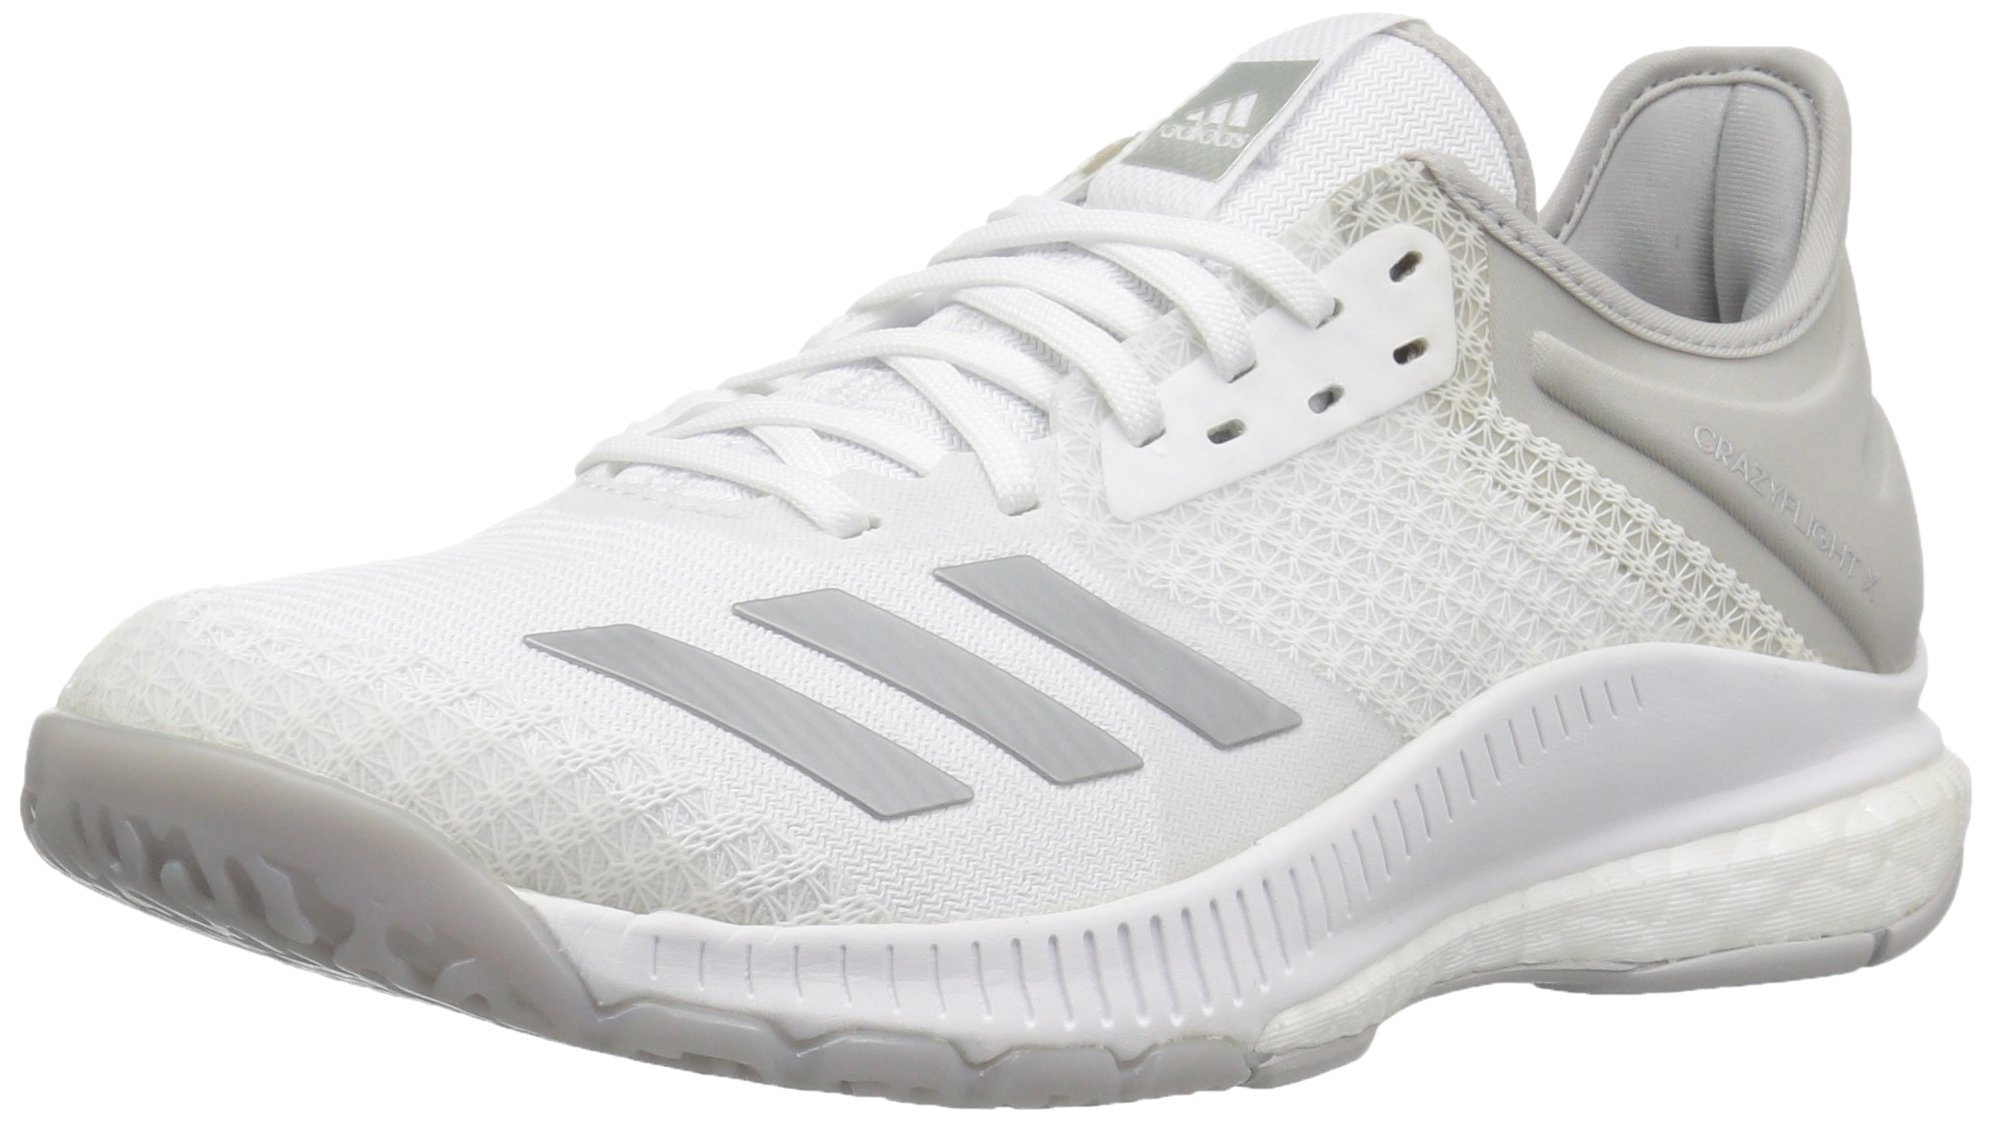 adidas Women's Crazyflight X 2 Volleyball Shoe, White/Silver Metallic/Grey Two, 5.5 M US